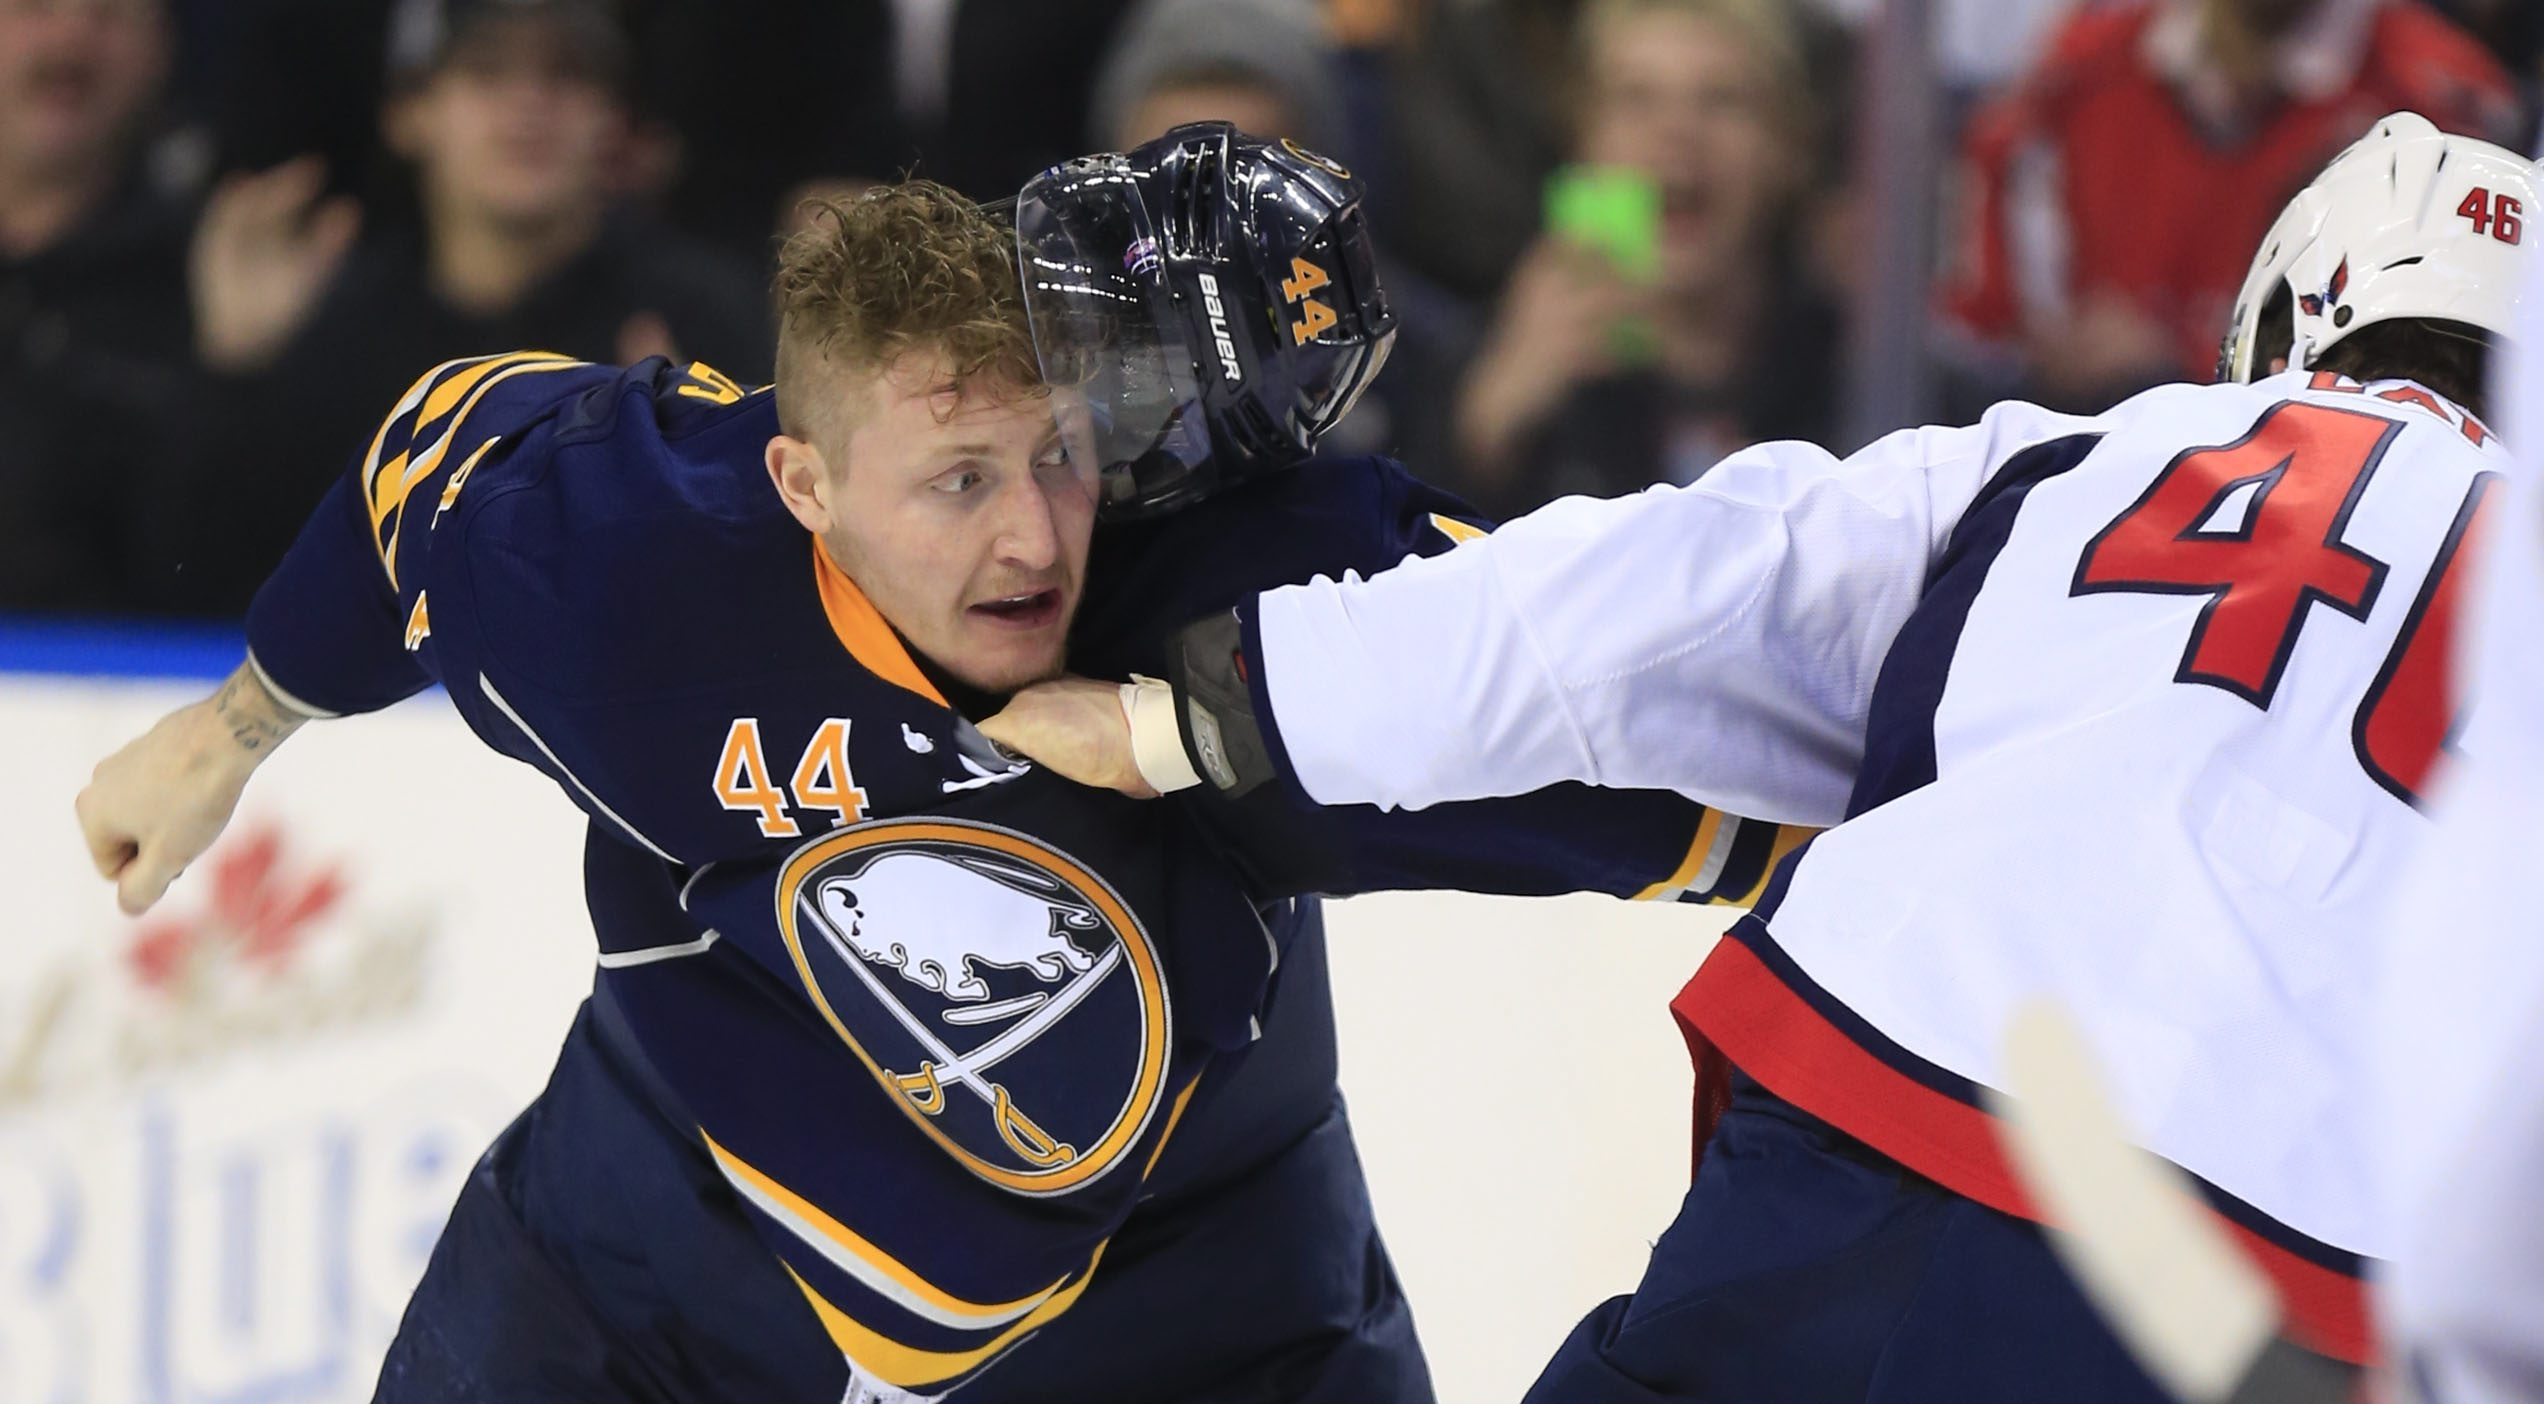 Buffalo Sabres left winger Nicolas Deslauriers fights Washington Capitals center Michael Latta during second-period action at the First Niagara Center on Dec. 28, 2015.